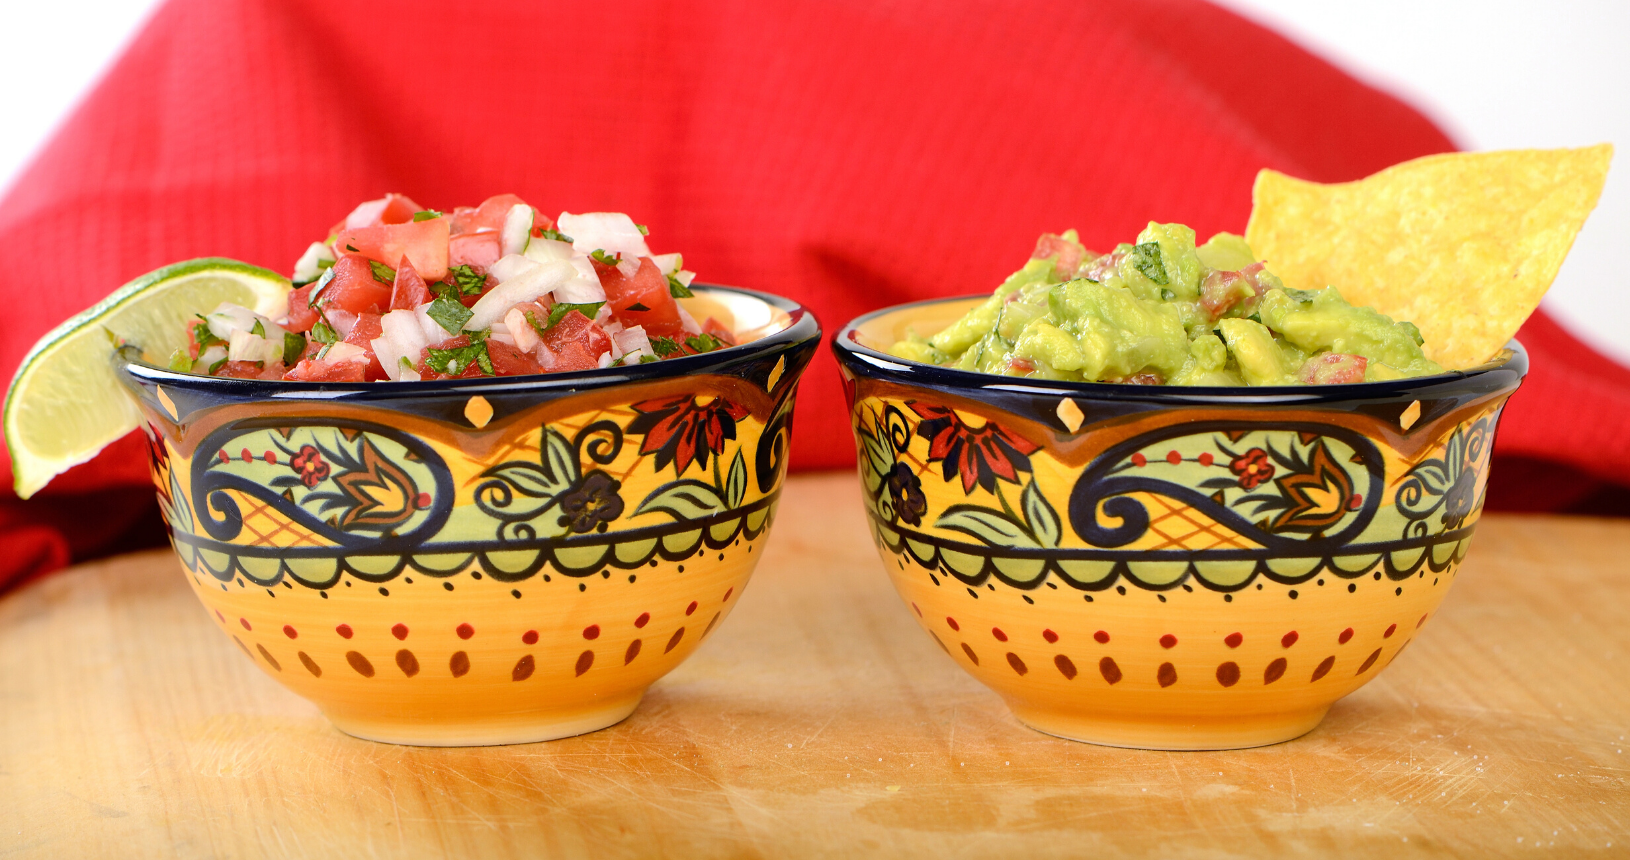 guac and pico de gallo